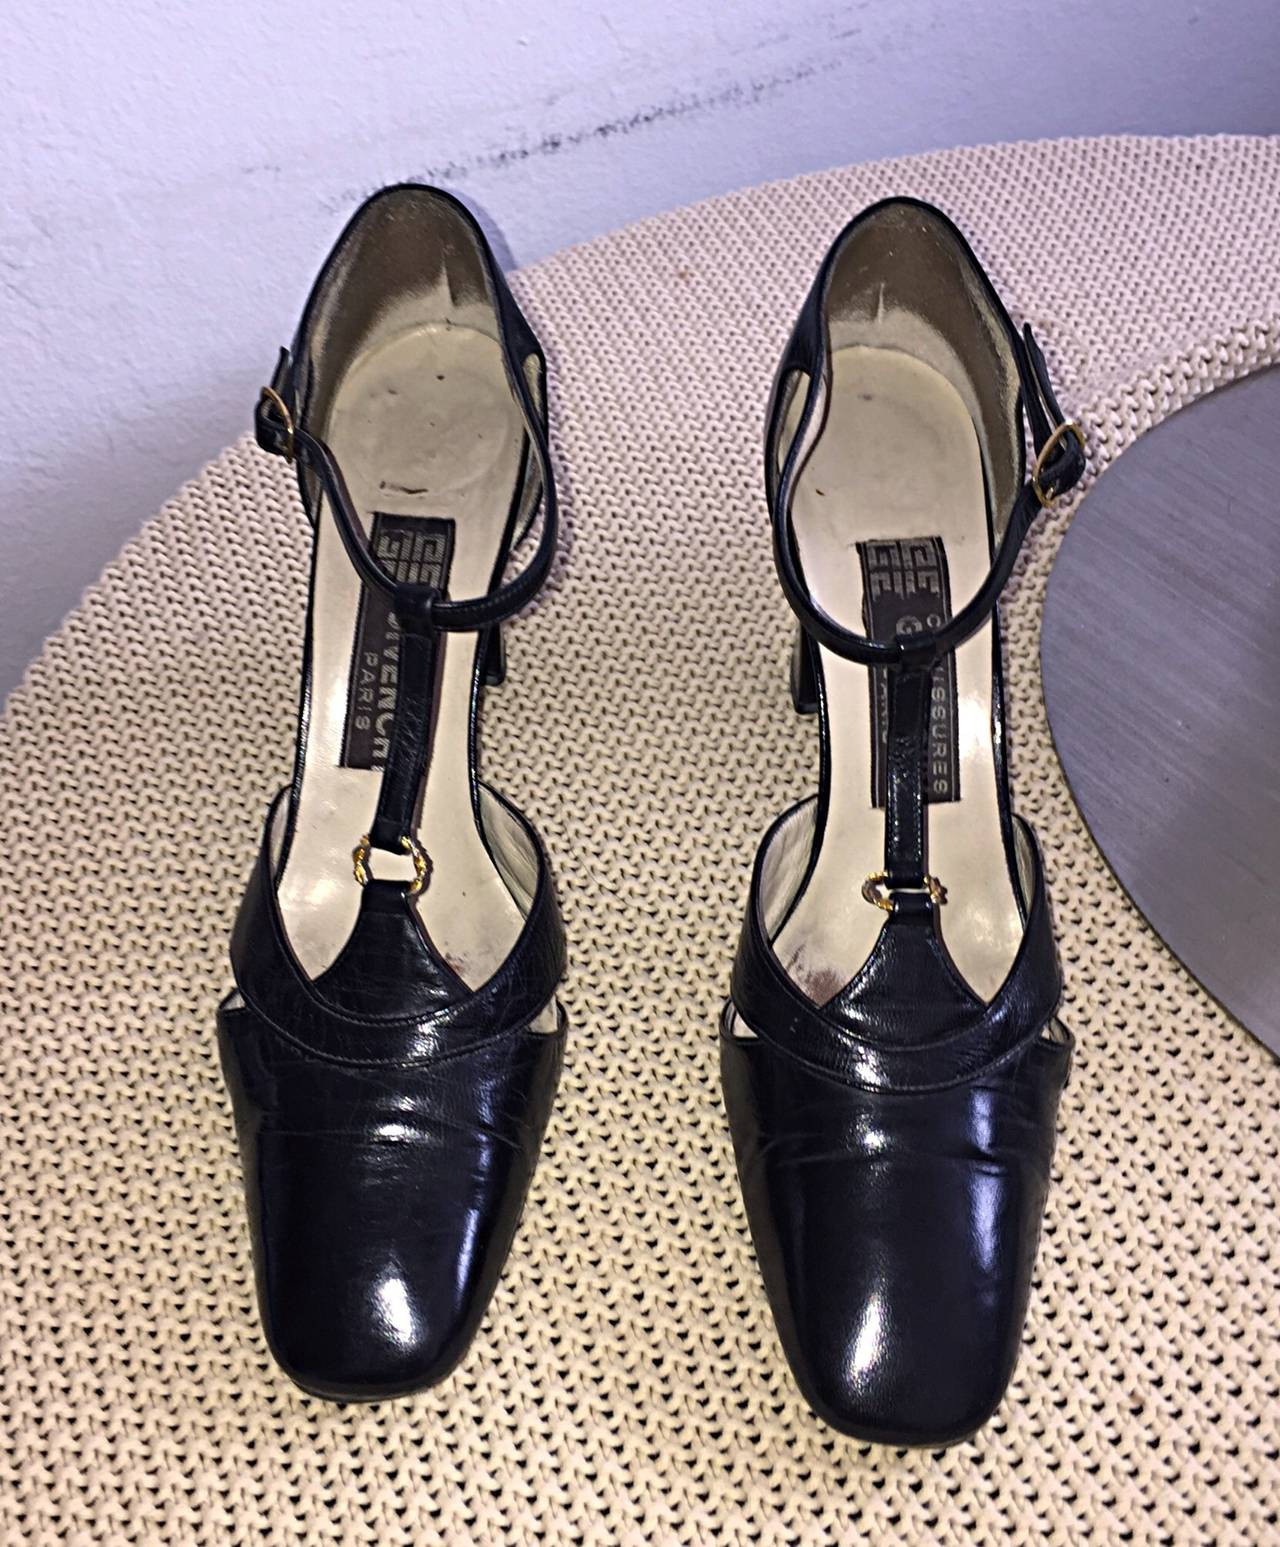 1960s Vintage Givenchy Black Leather Peekaboo T - Strap Heels Shoes Size 8 4